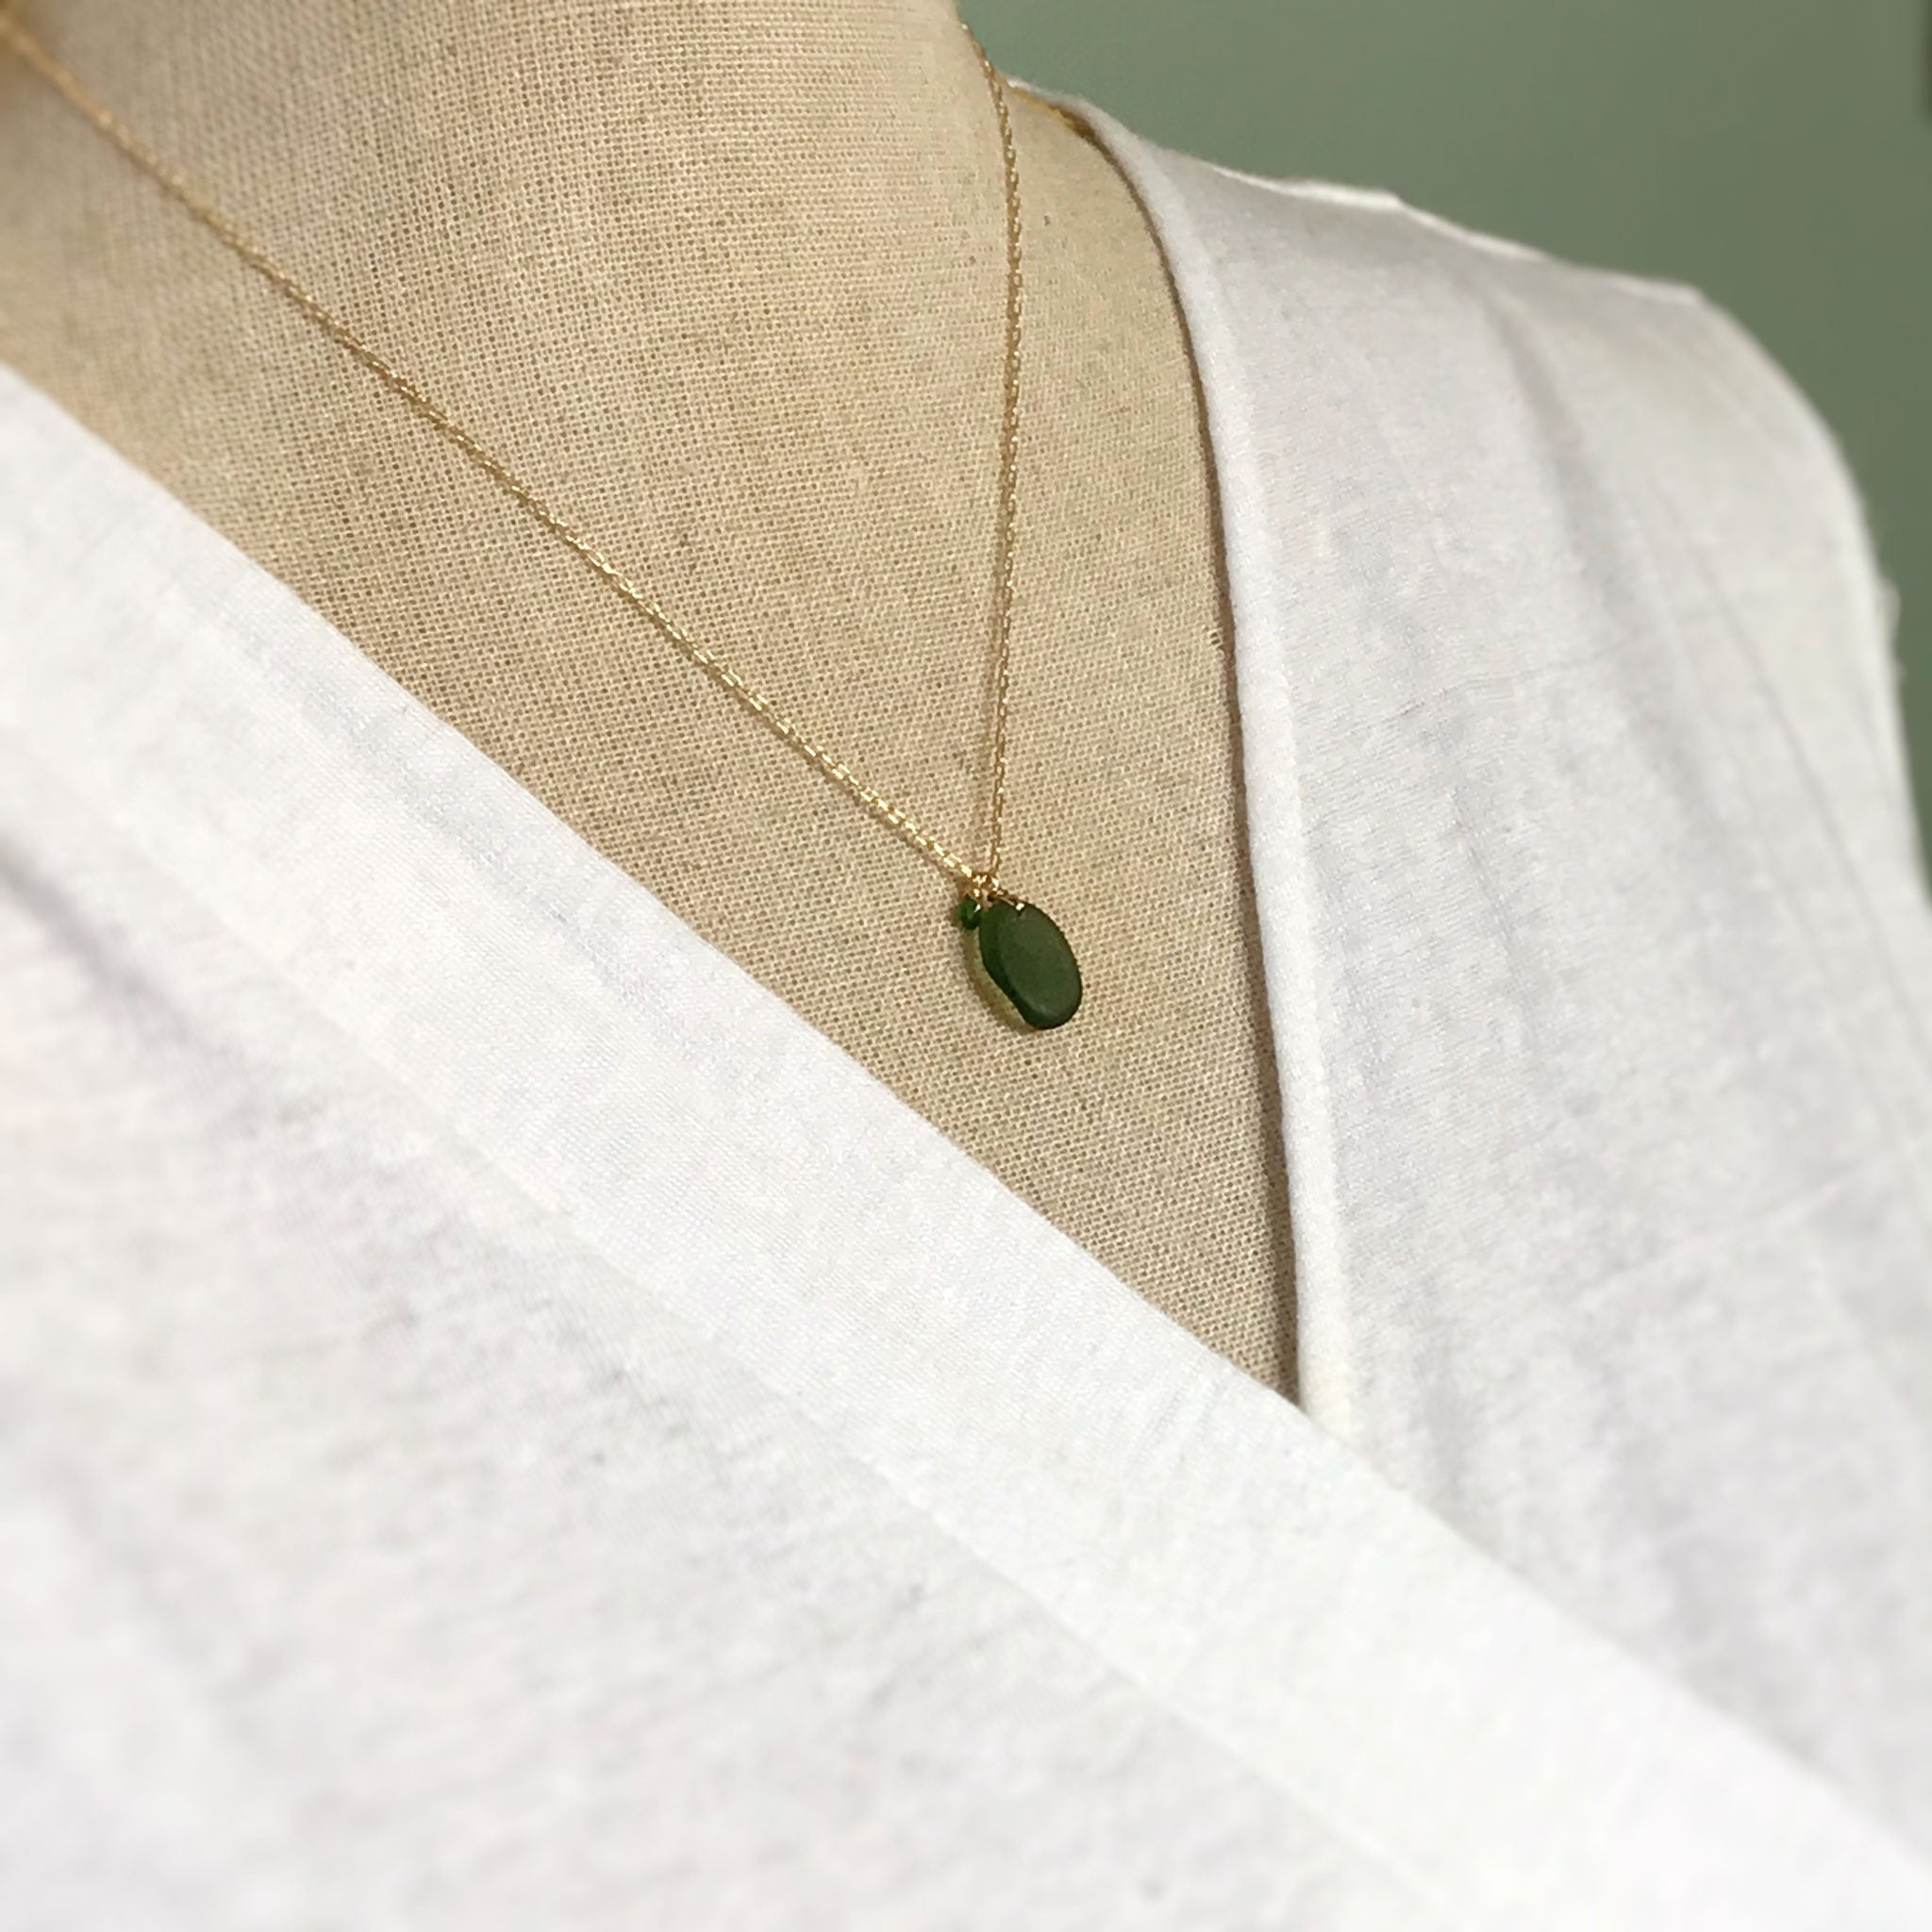 green beach glass necklace with tsavorite stones on gold chain kriket Broadhurst jewellery